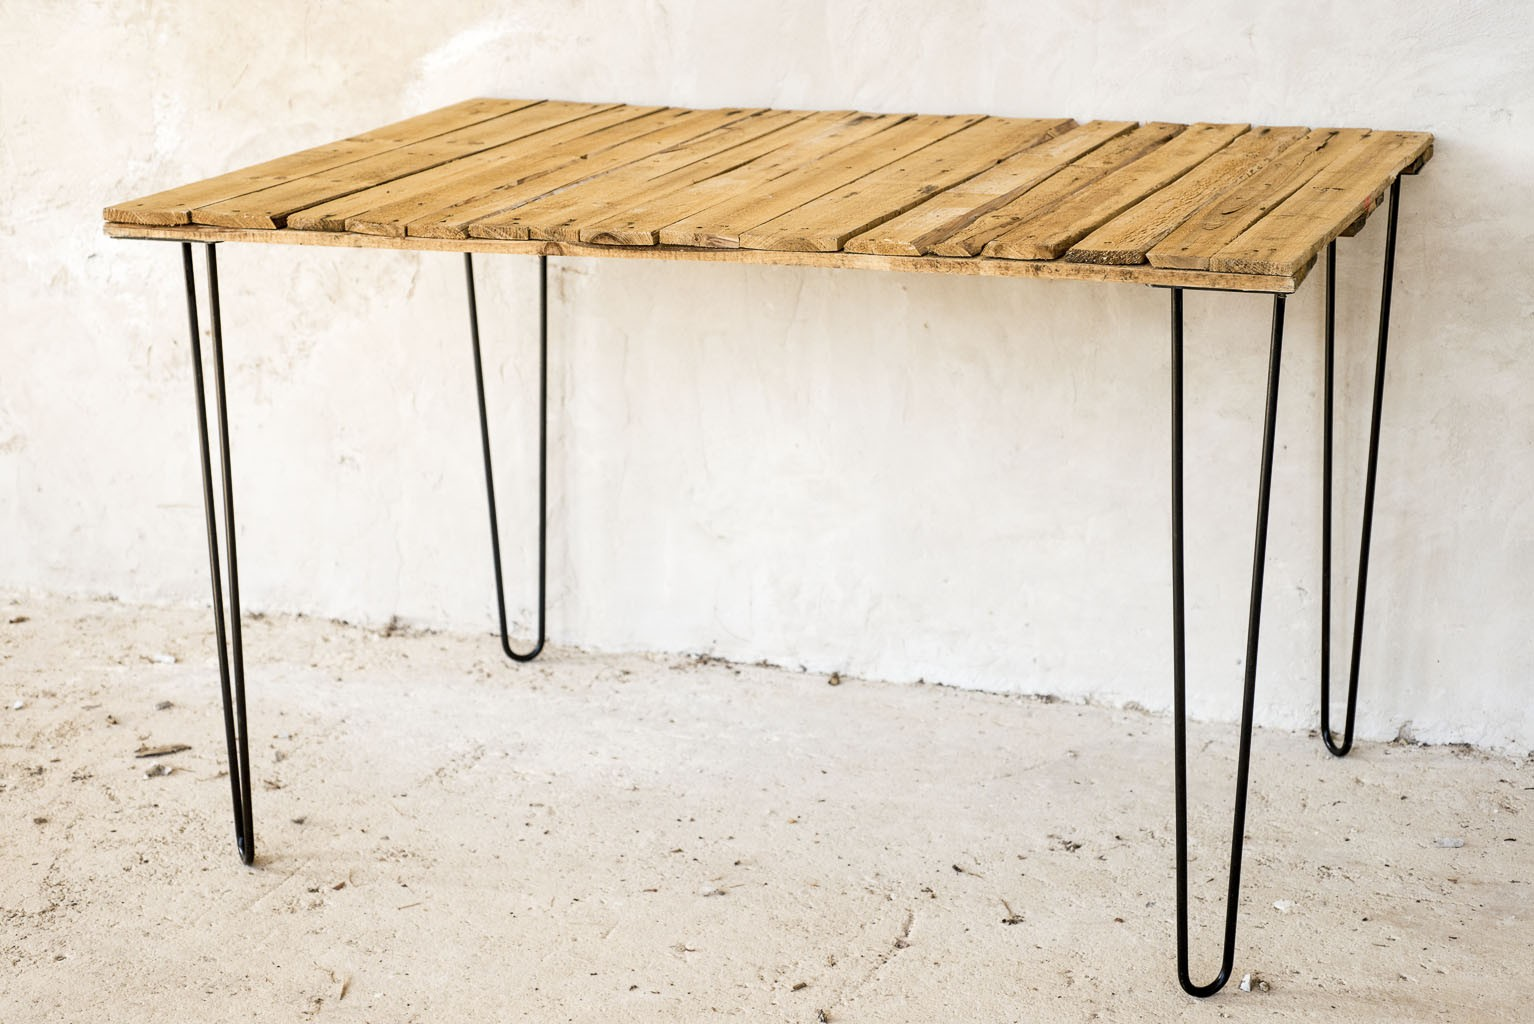 Metal Table Legs, Hairpin Legs